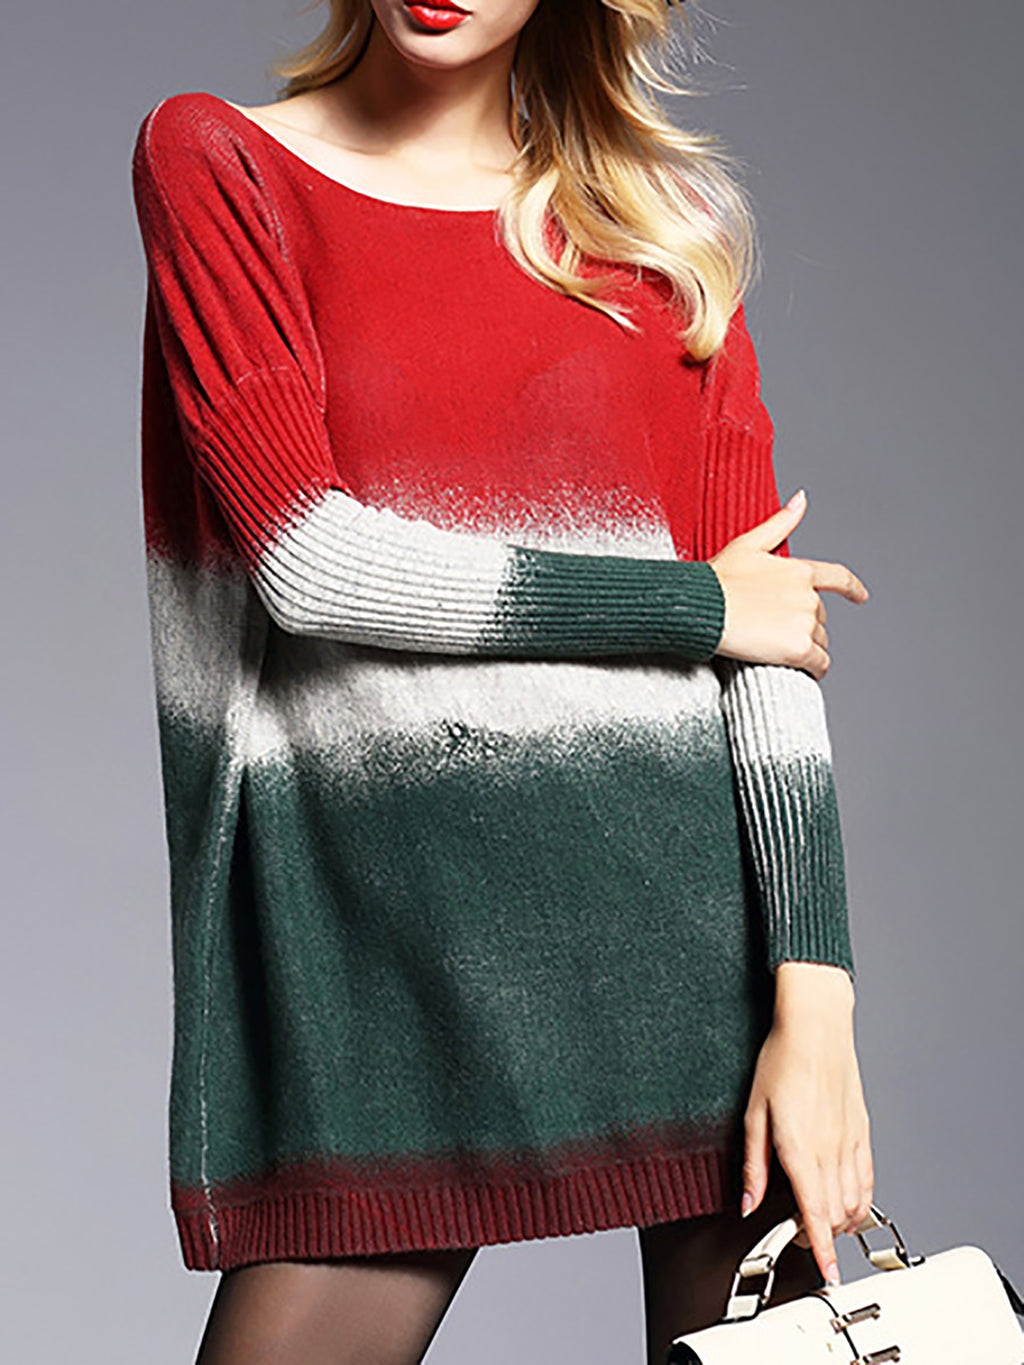 Multicolor Bateau/boat Neck Casual Color-block Knit Top